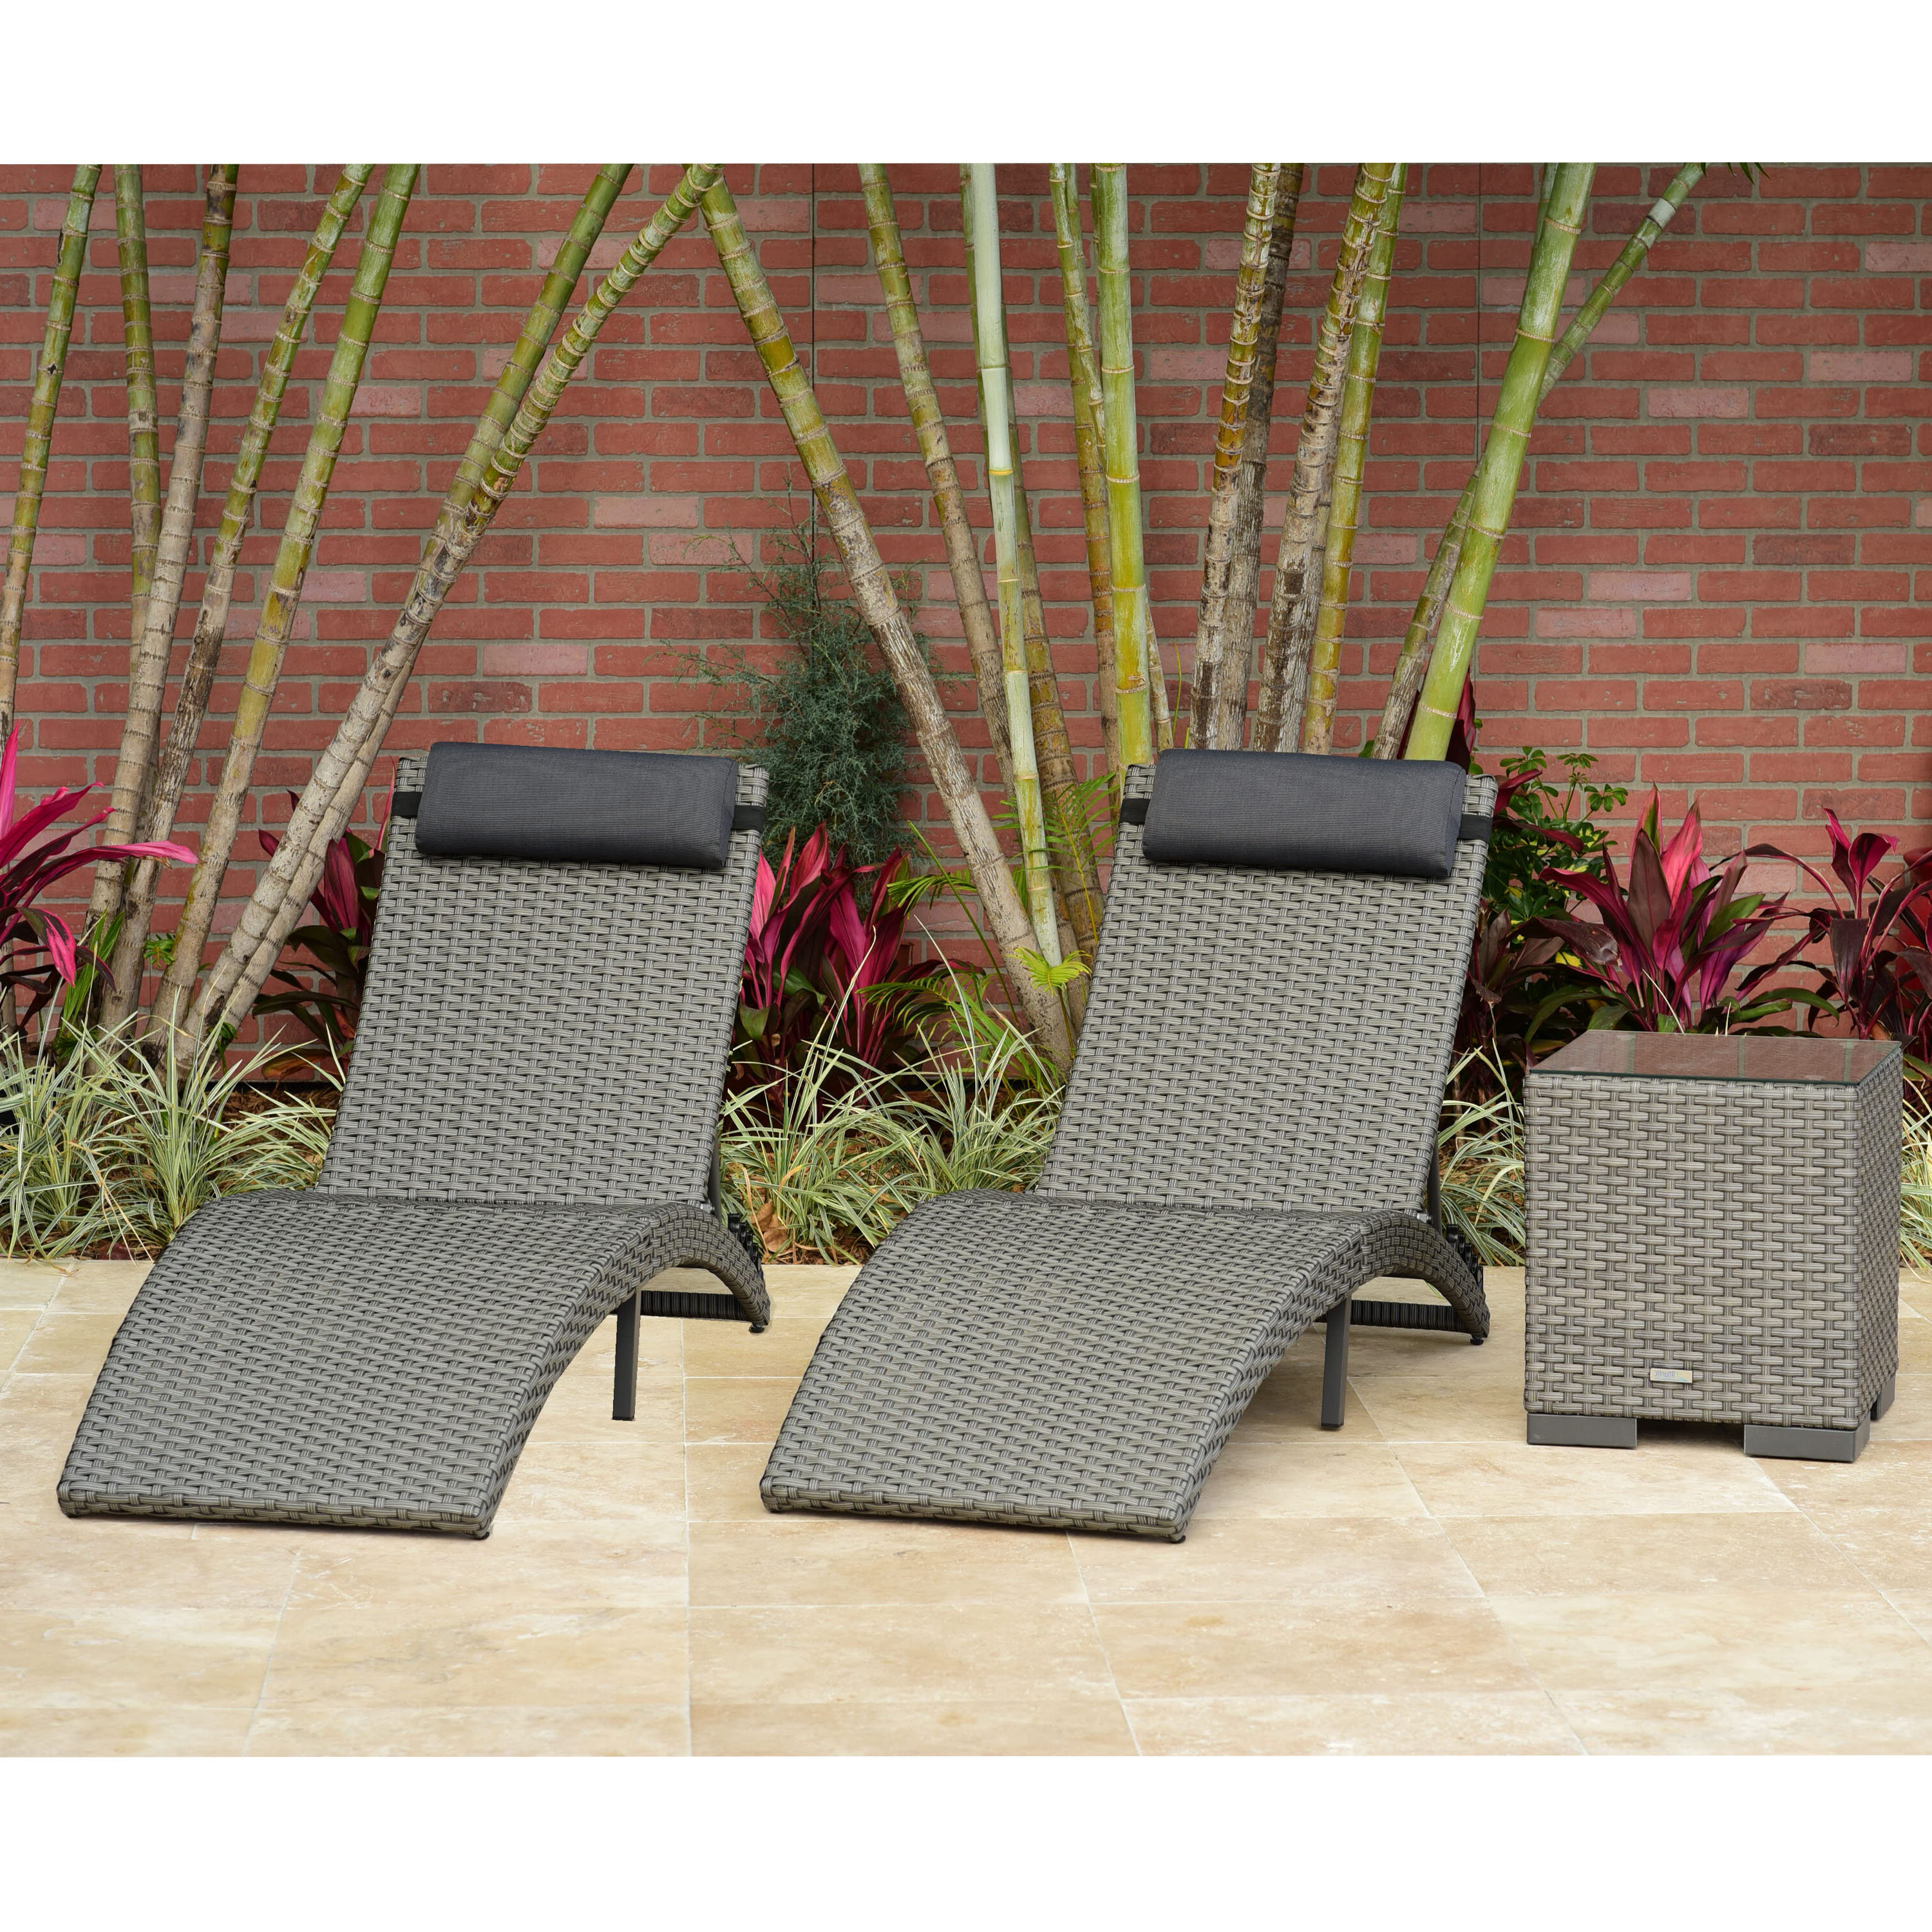 Outdoor 3 Piece Wicker Chaise Lounges And Table Sets For Most Popular Sansom 3 Piece Chaise Lounge Set With Cushion And Table (View 12 of 25)